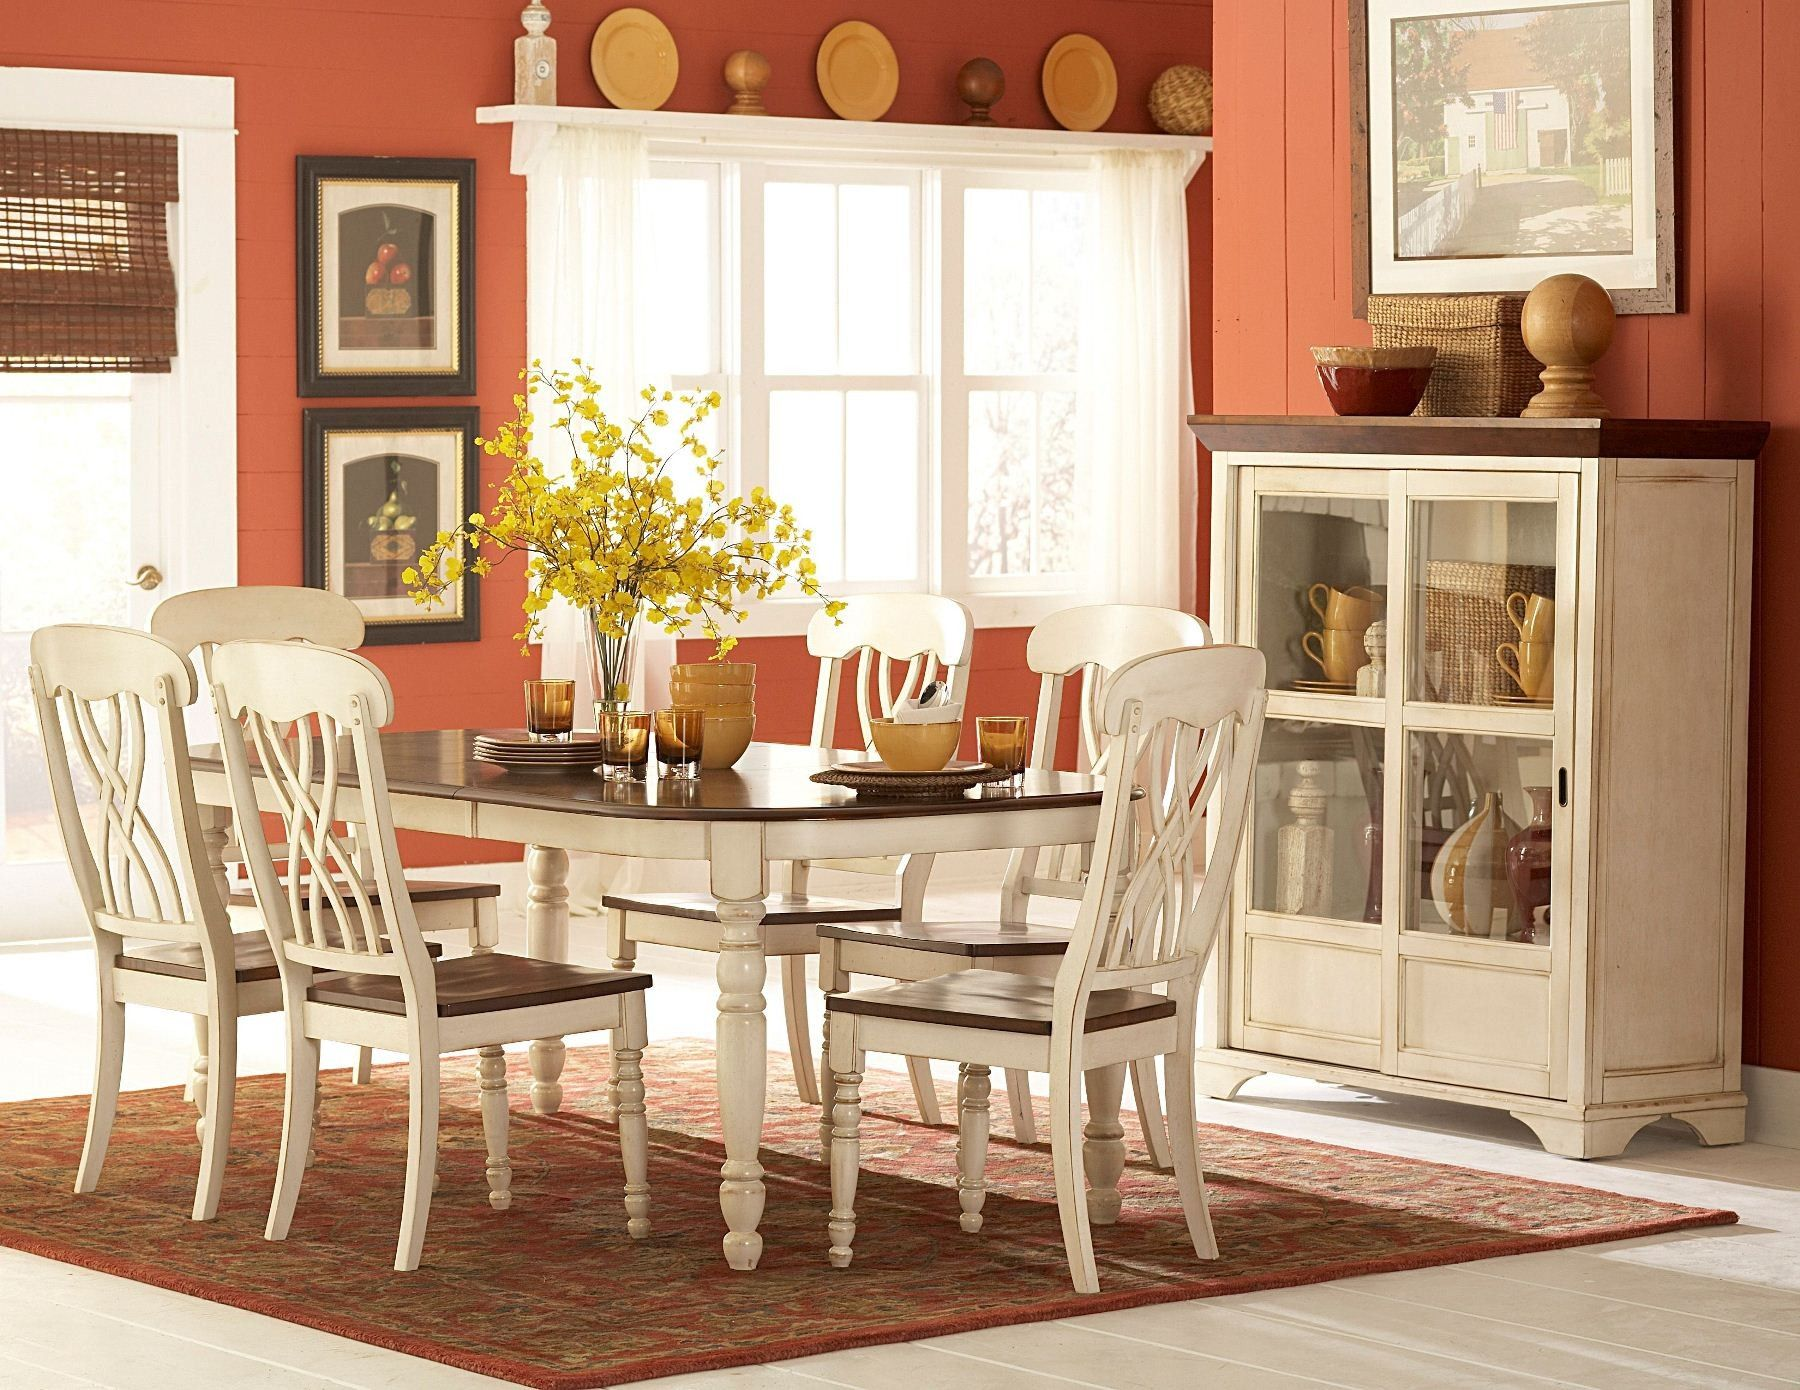 The Design Of The Ohana White Dining Room Sethomelegance Pleasing Cherry Wood Dining Room Set Design Inspiration